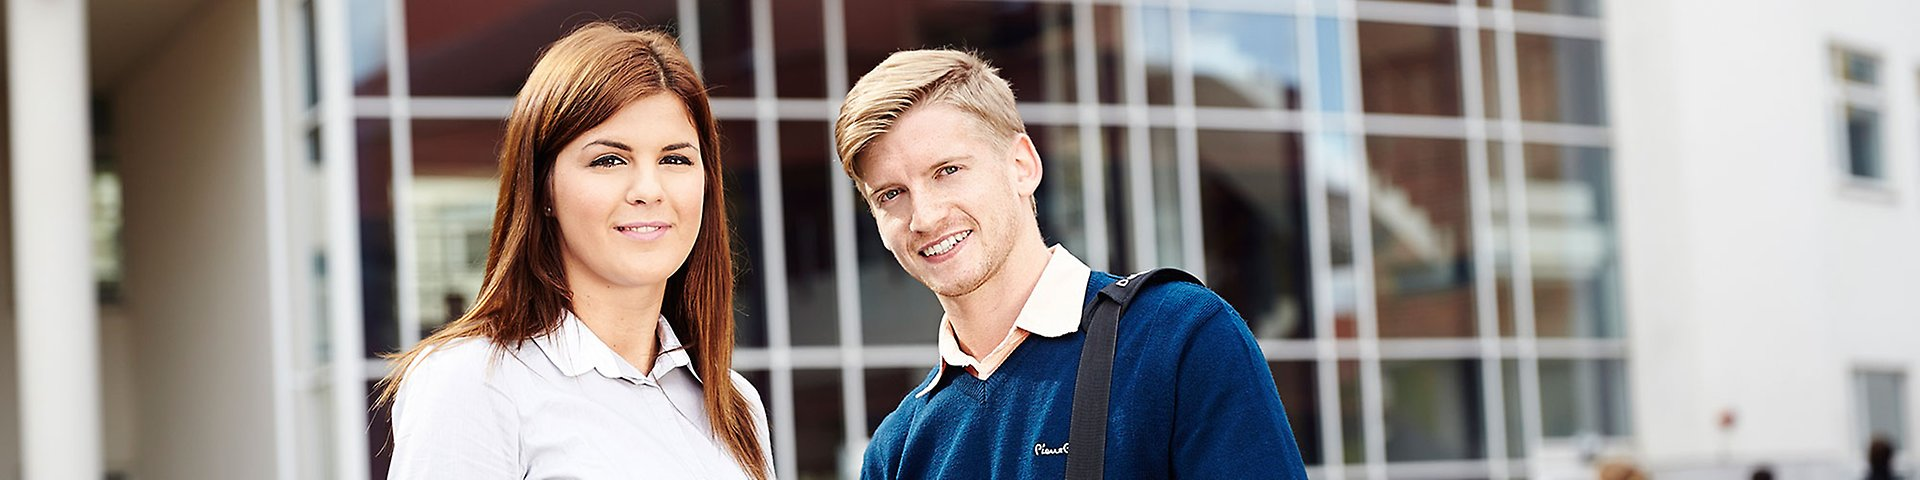 mba essays community service Business school and mba application essays fewer than 13% of applicants gain admission to the top ten business schools despite a struggling economy, the numbers of students lining up to earn their masters in business administration (mba) remain high.